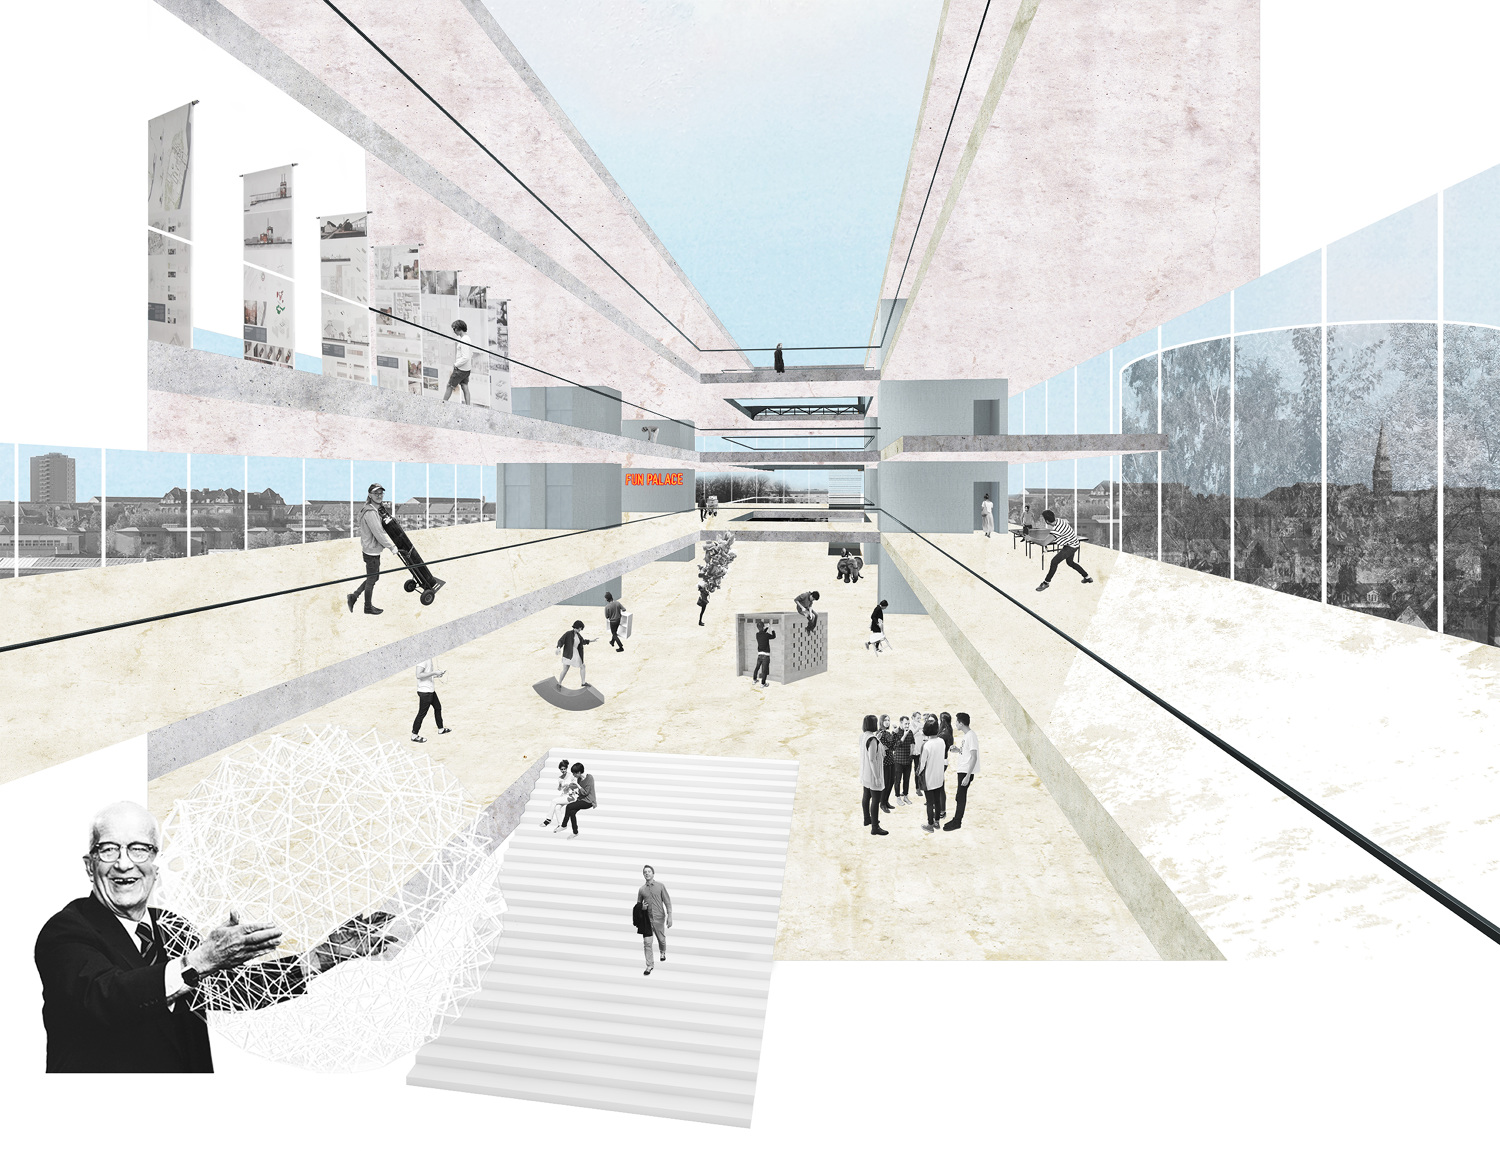 new aarhus school of architecture - nathan romero muelas